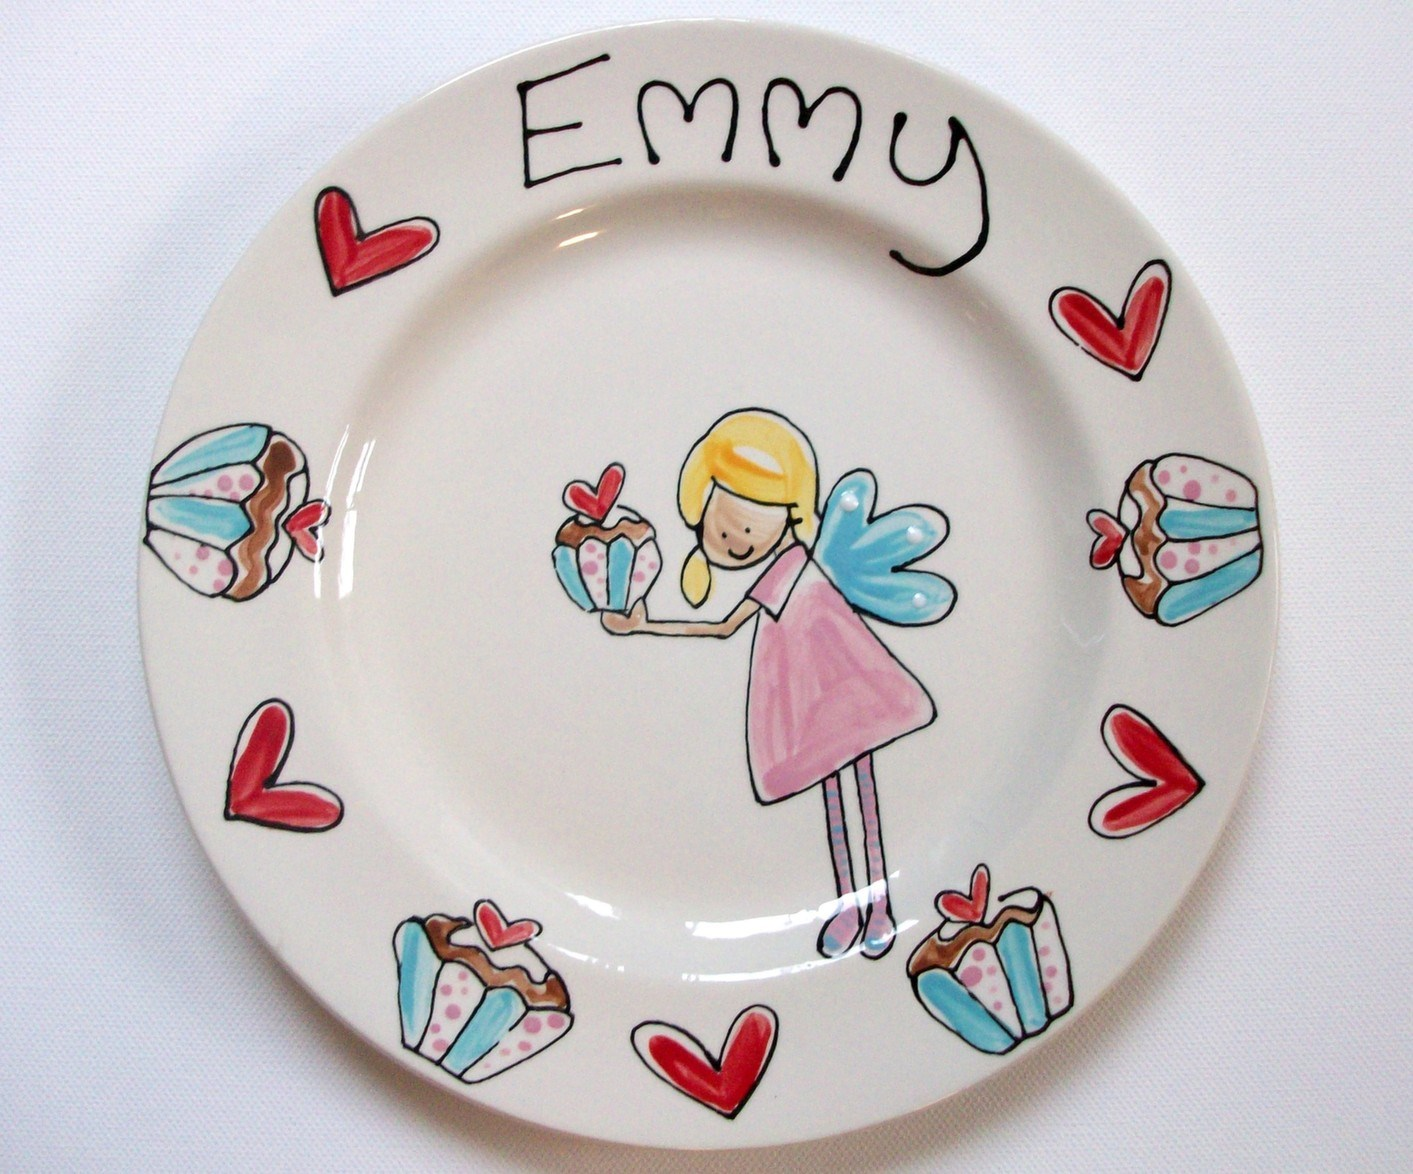 Personalised Children's Dinner Plate 22cm Rimmed